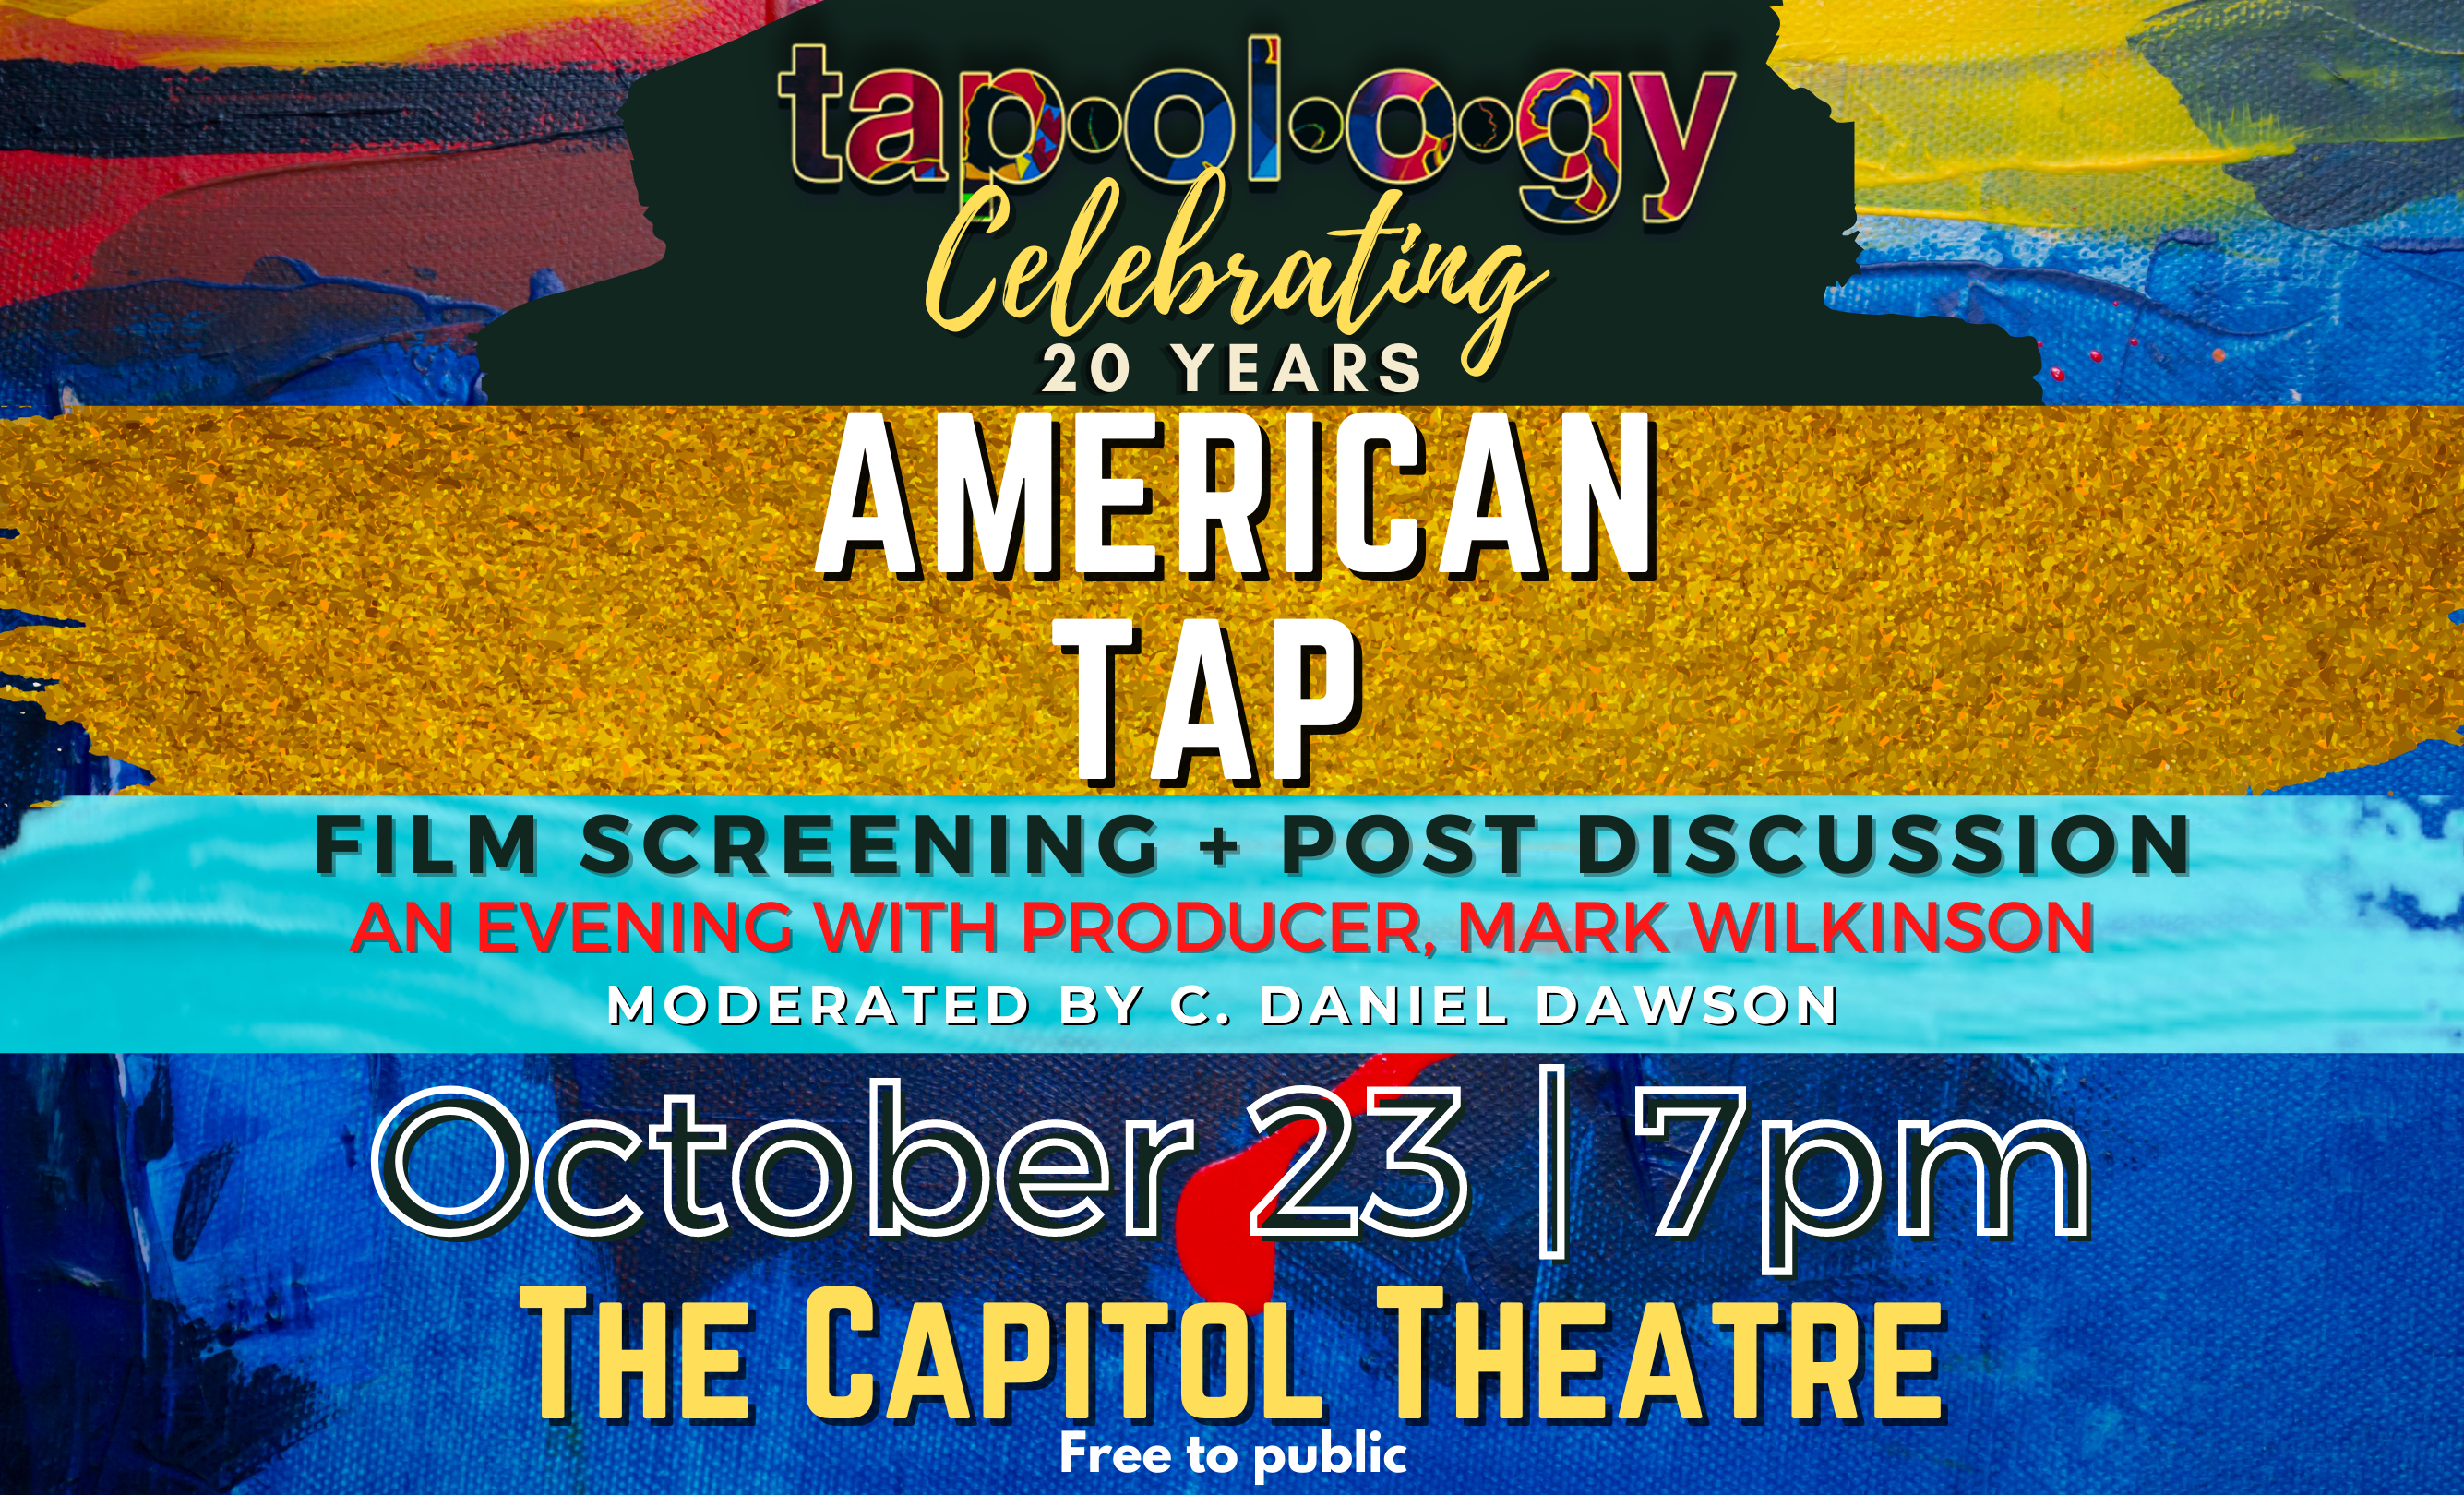 Tapology Celebrating 20 Years, American Tap Film Screening & Discussion